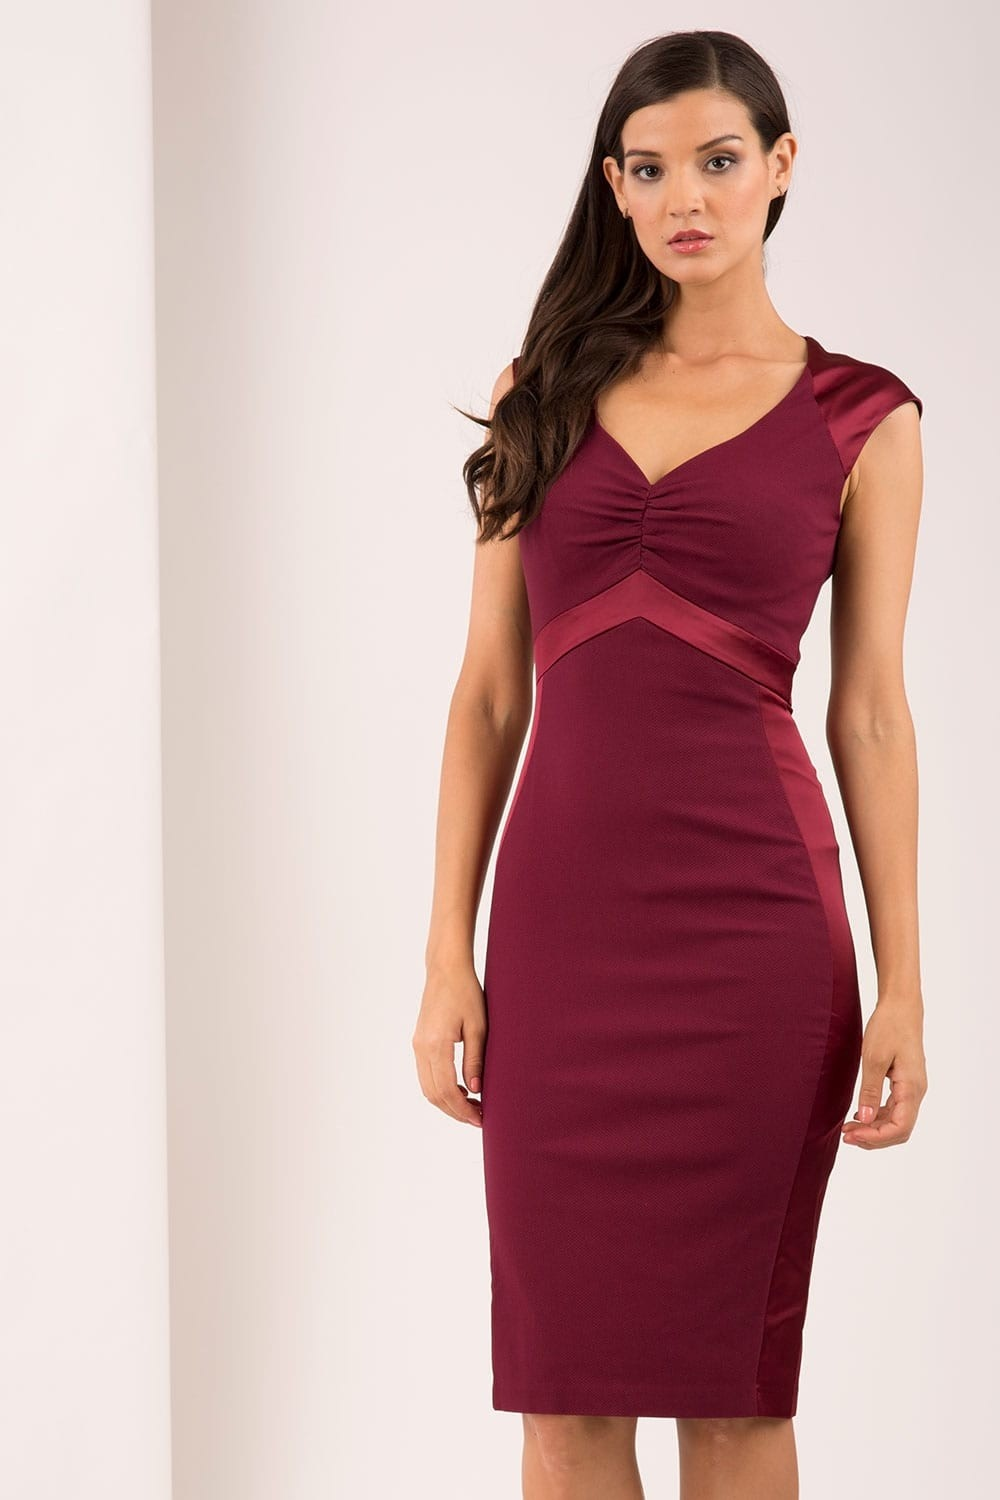 SALLY Dress Dark Wine 8